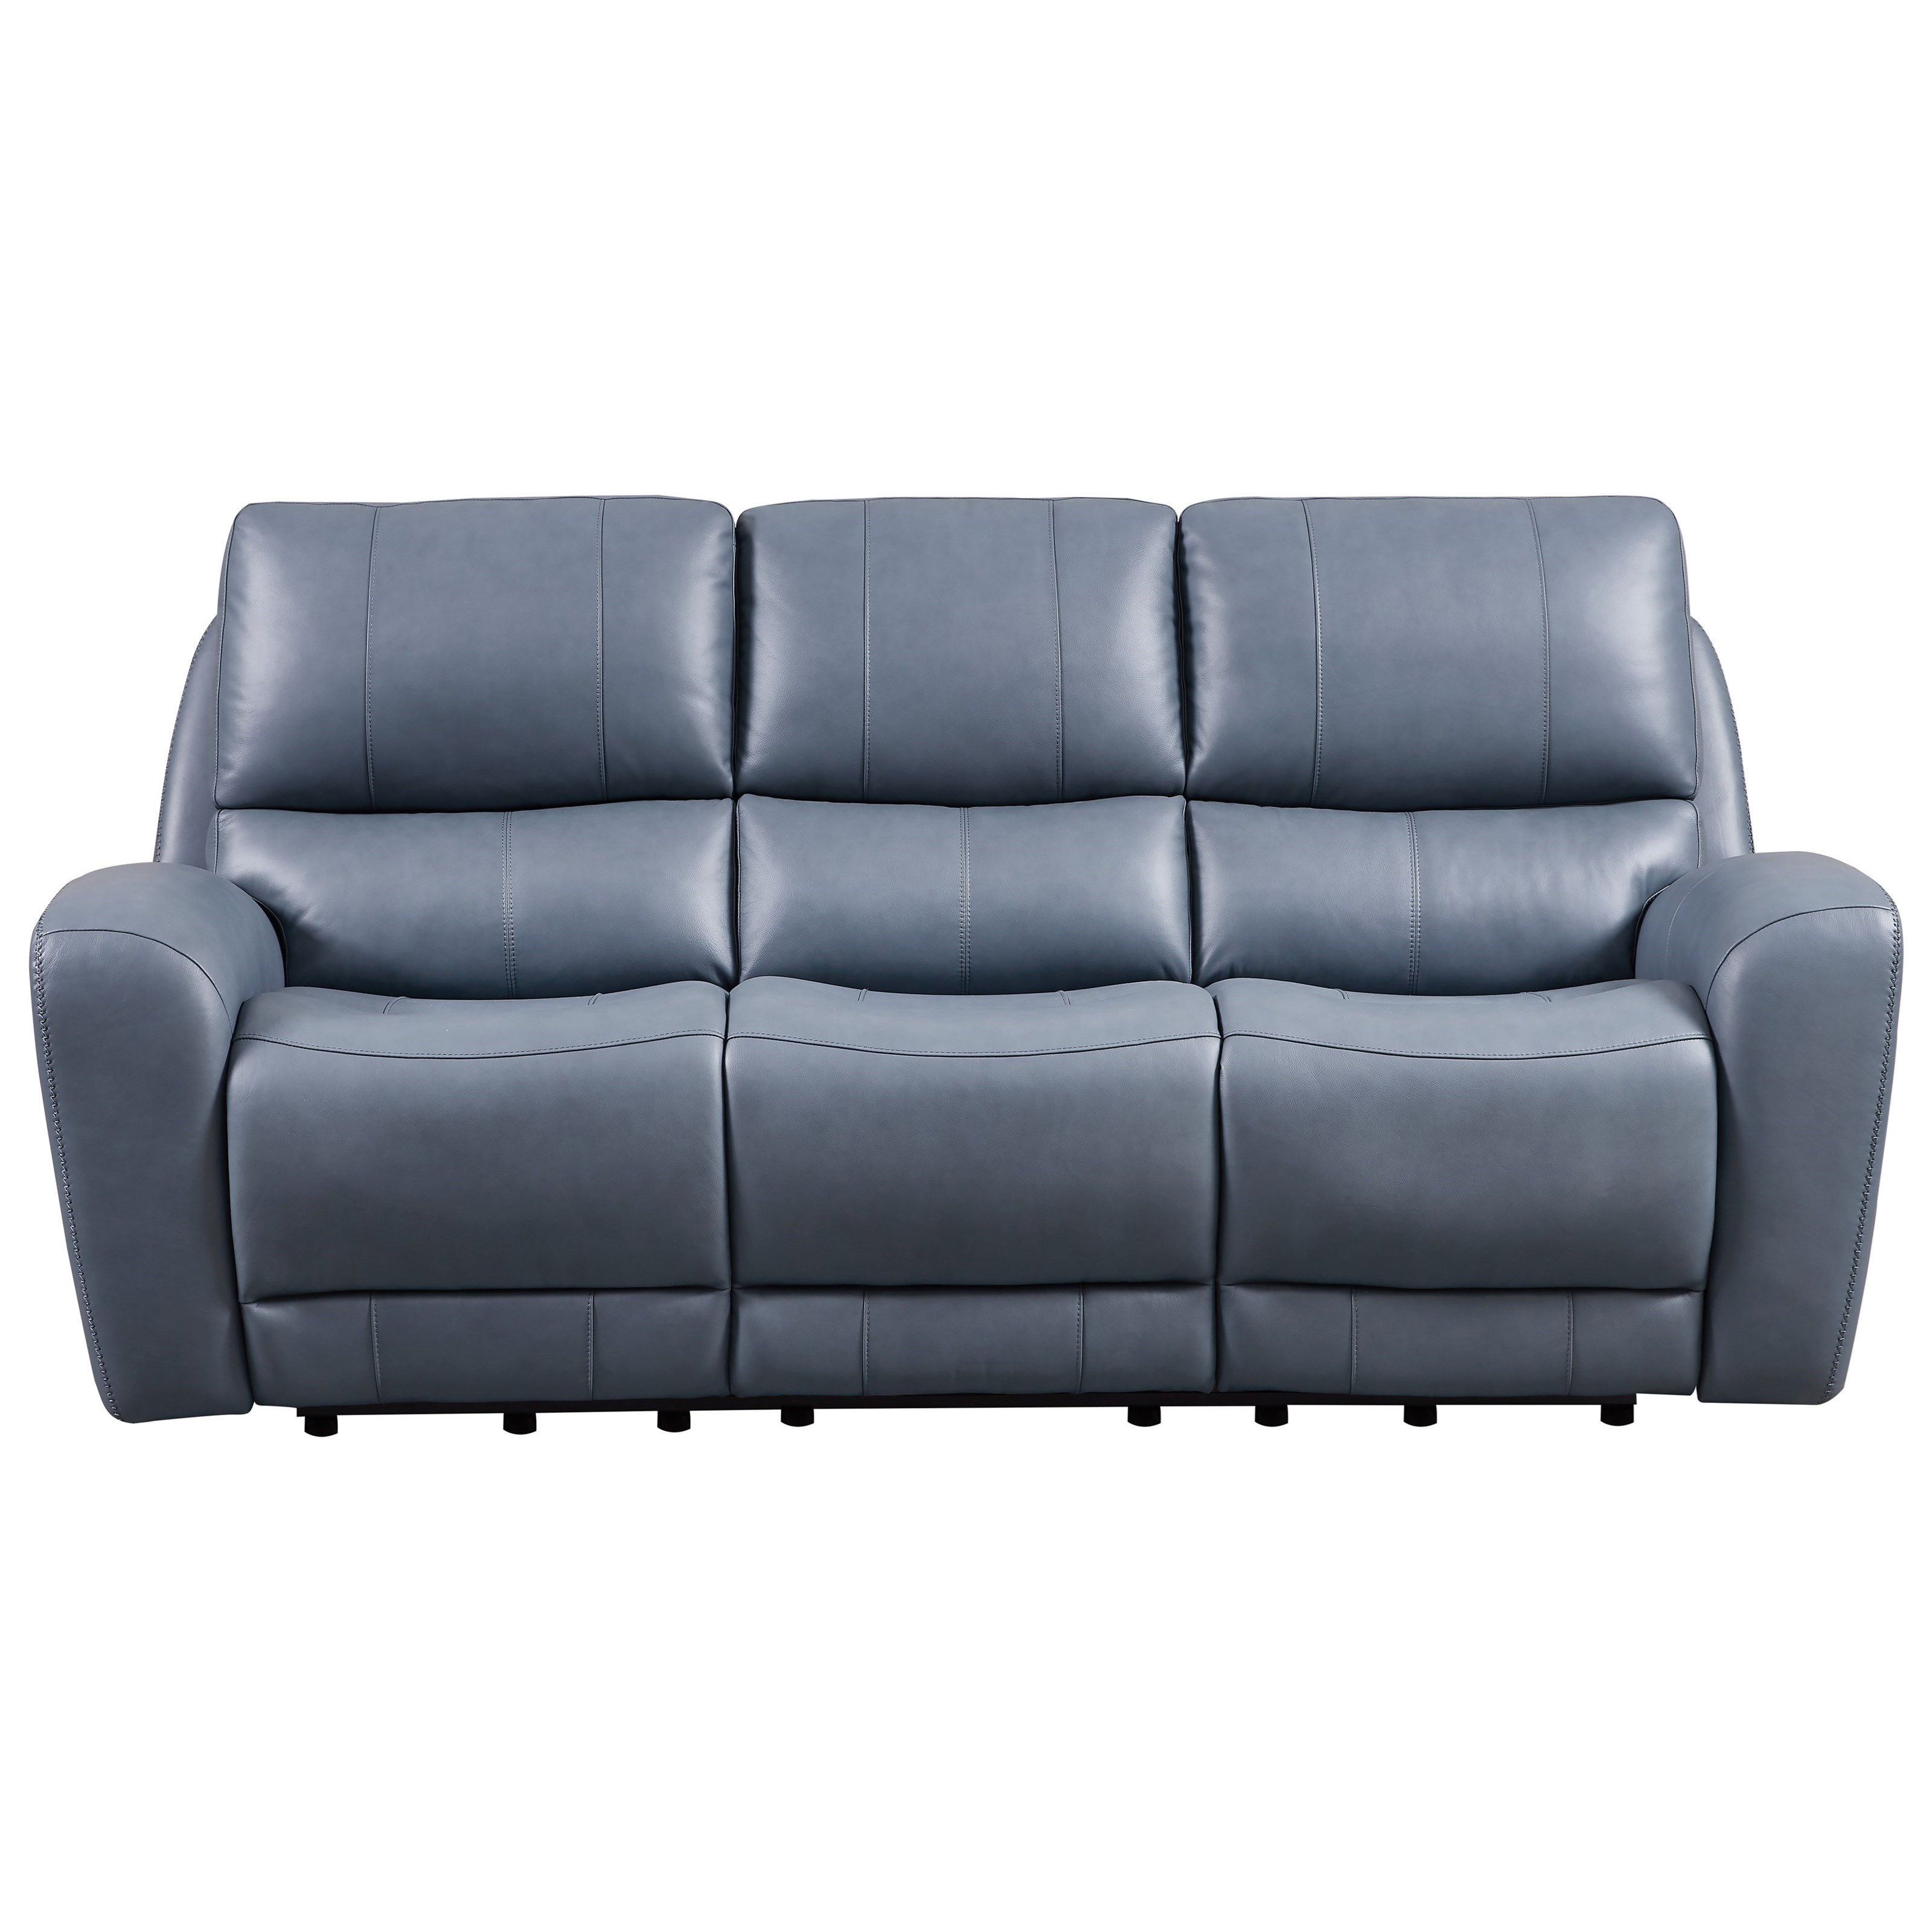 Belair Power Reclining Sofa by Leather Italia USA at Darvin Furniture